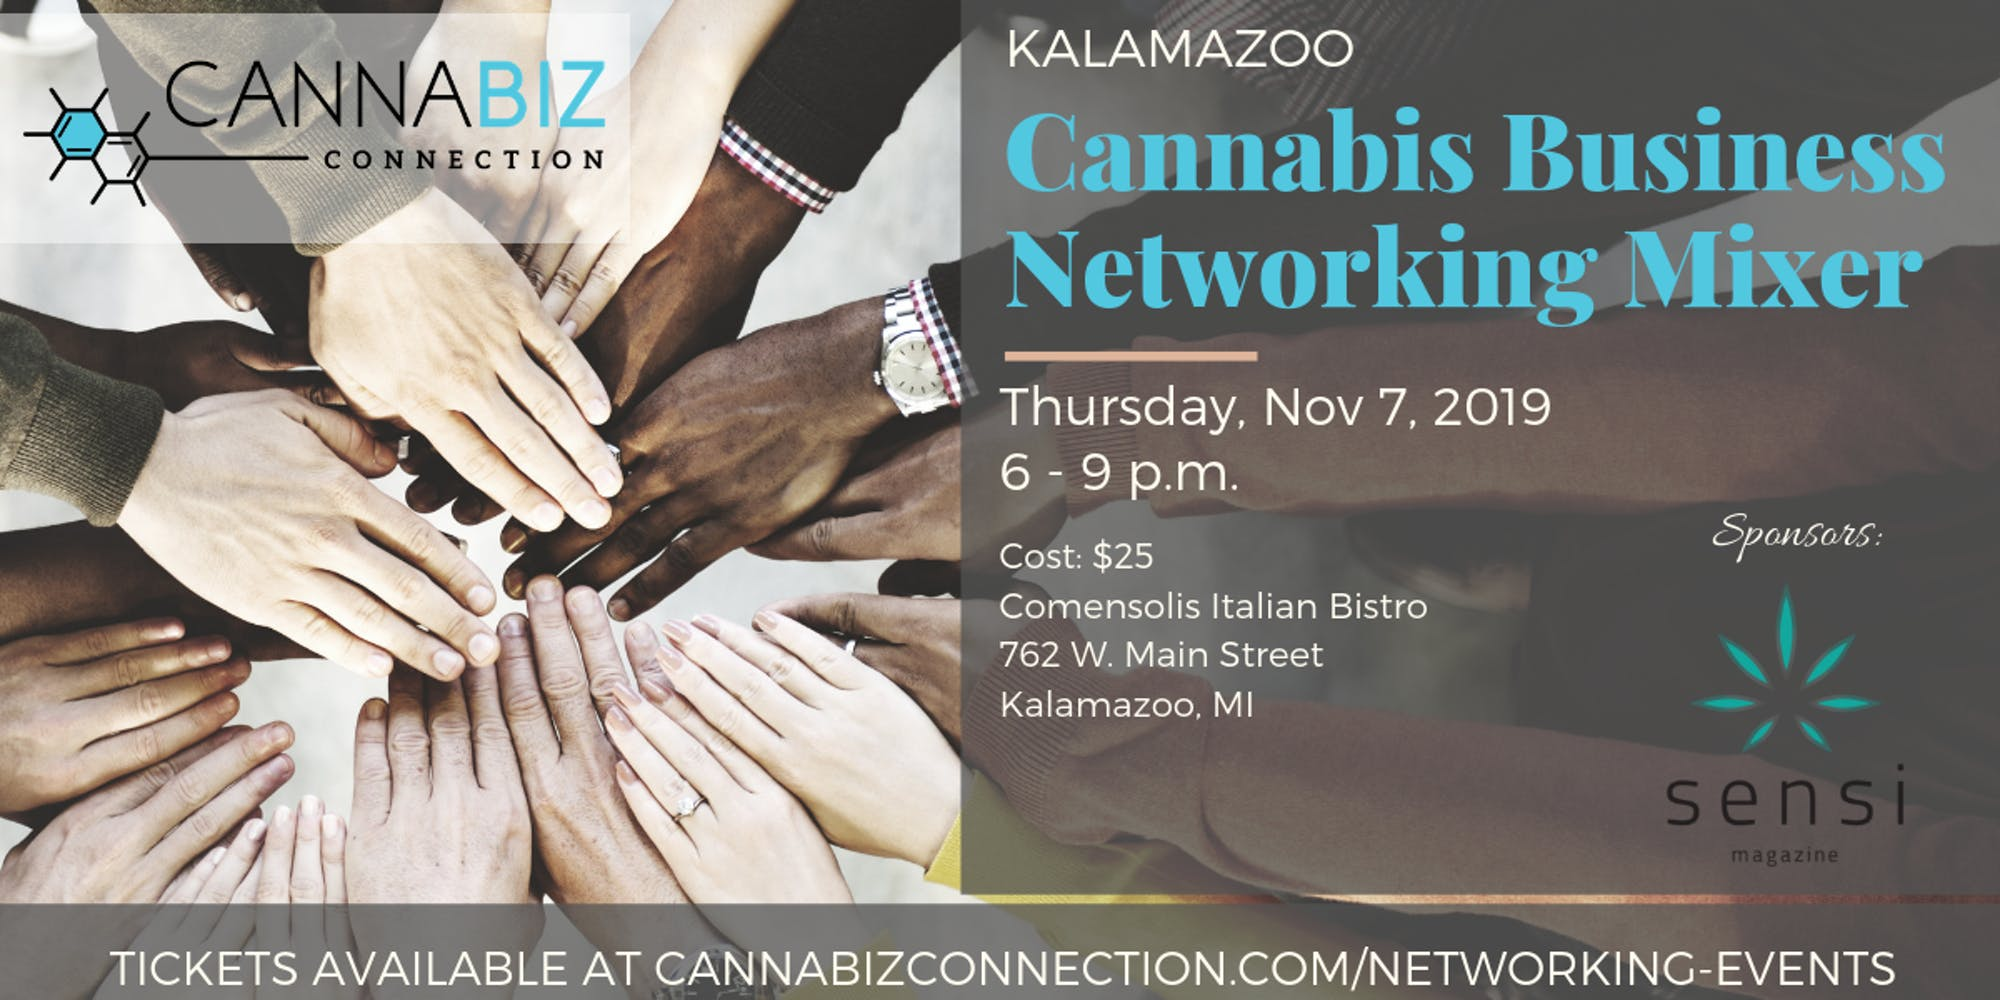 Kalamazoo Cannabiz Connection Networking Mixer